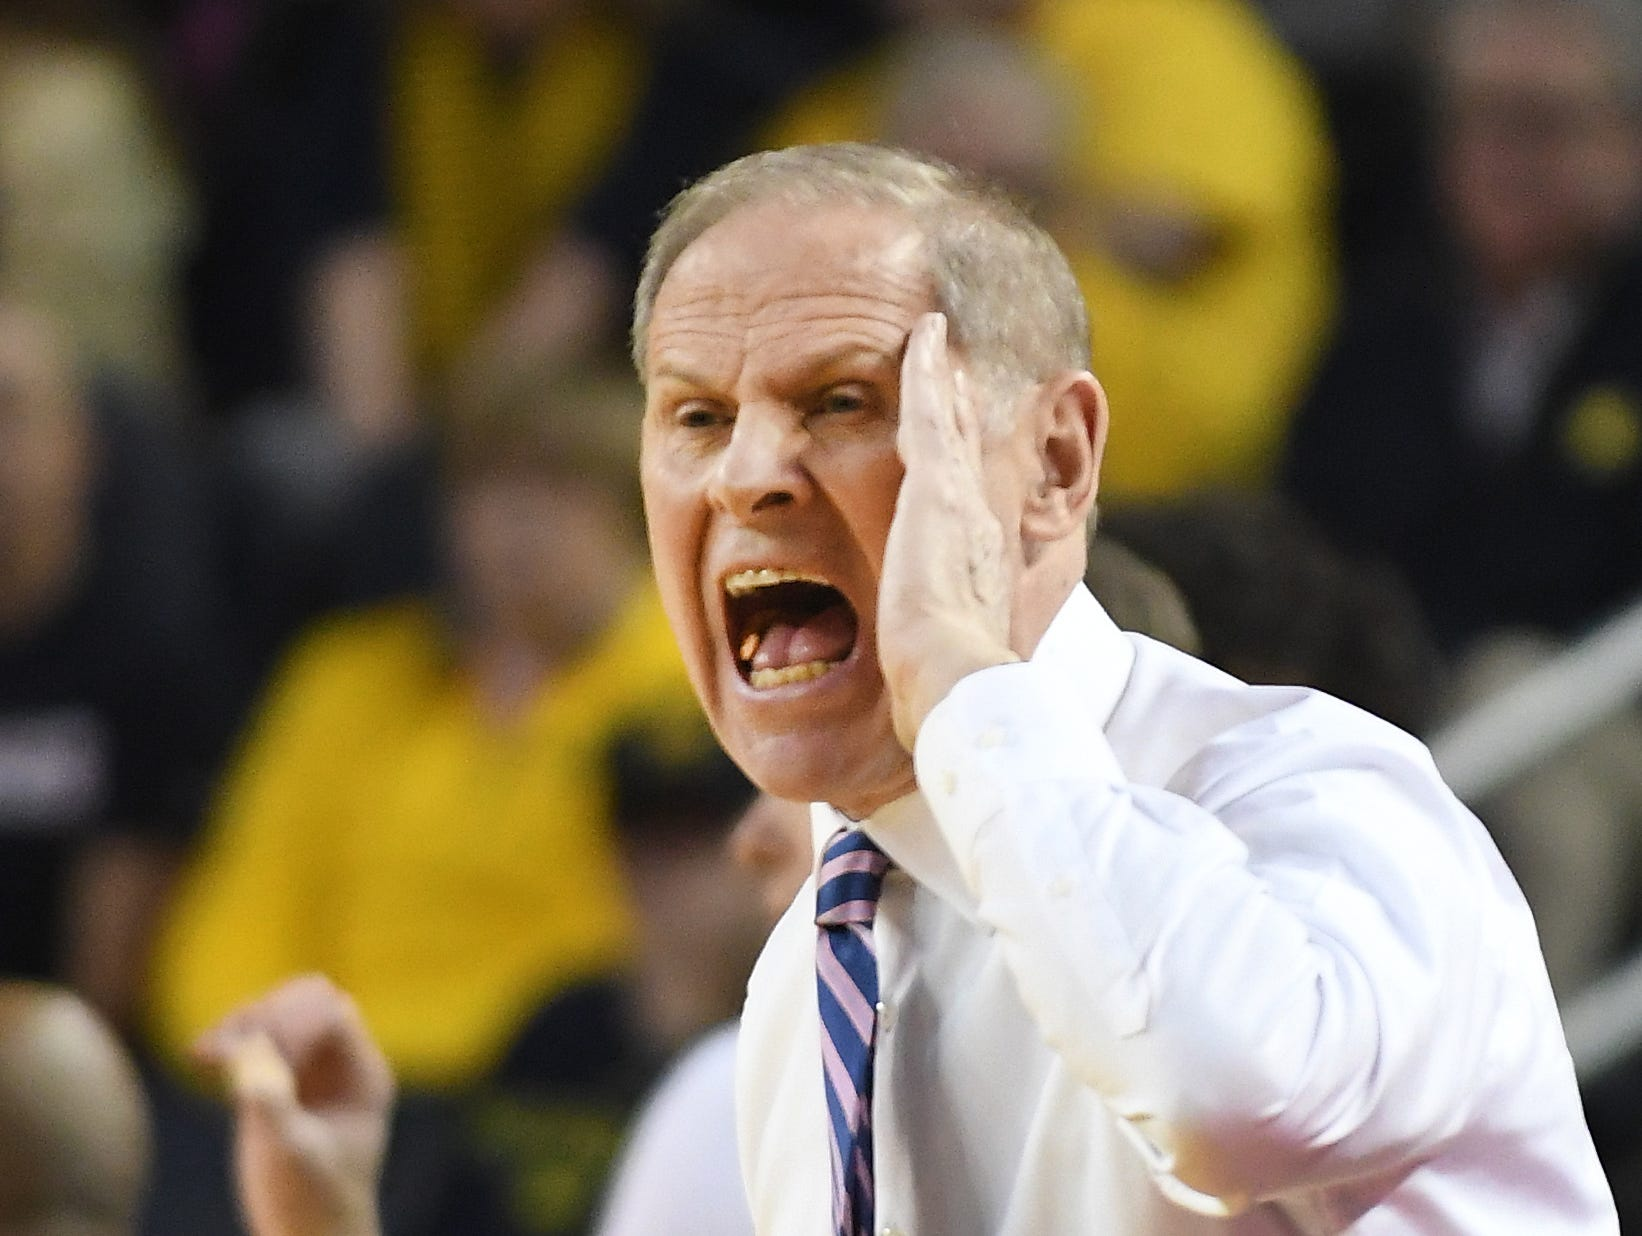 Michigan coach Jon Beilein calls out to his players on the court in the first half.